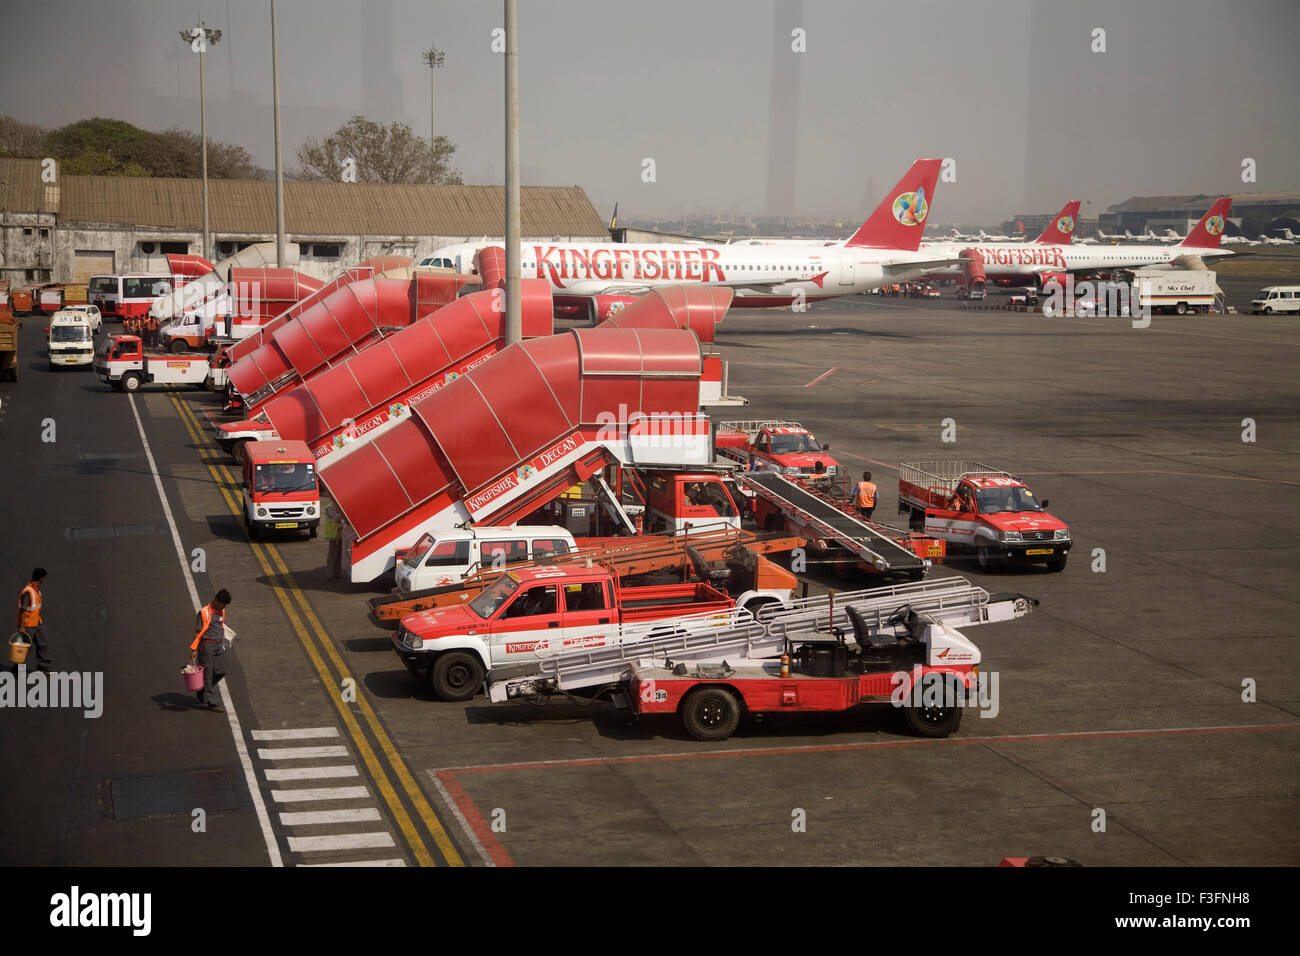 Kingfisher deccan flight air bus A320 is ready to take off at Chattrapati Shivaji Terminal Mumbai ; Maharashtra - Stock Image